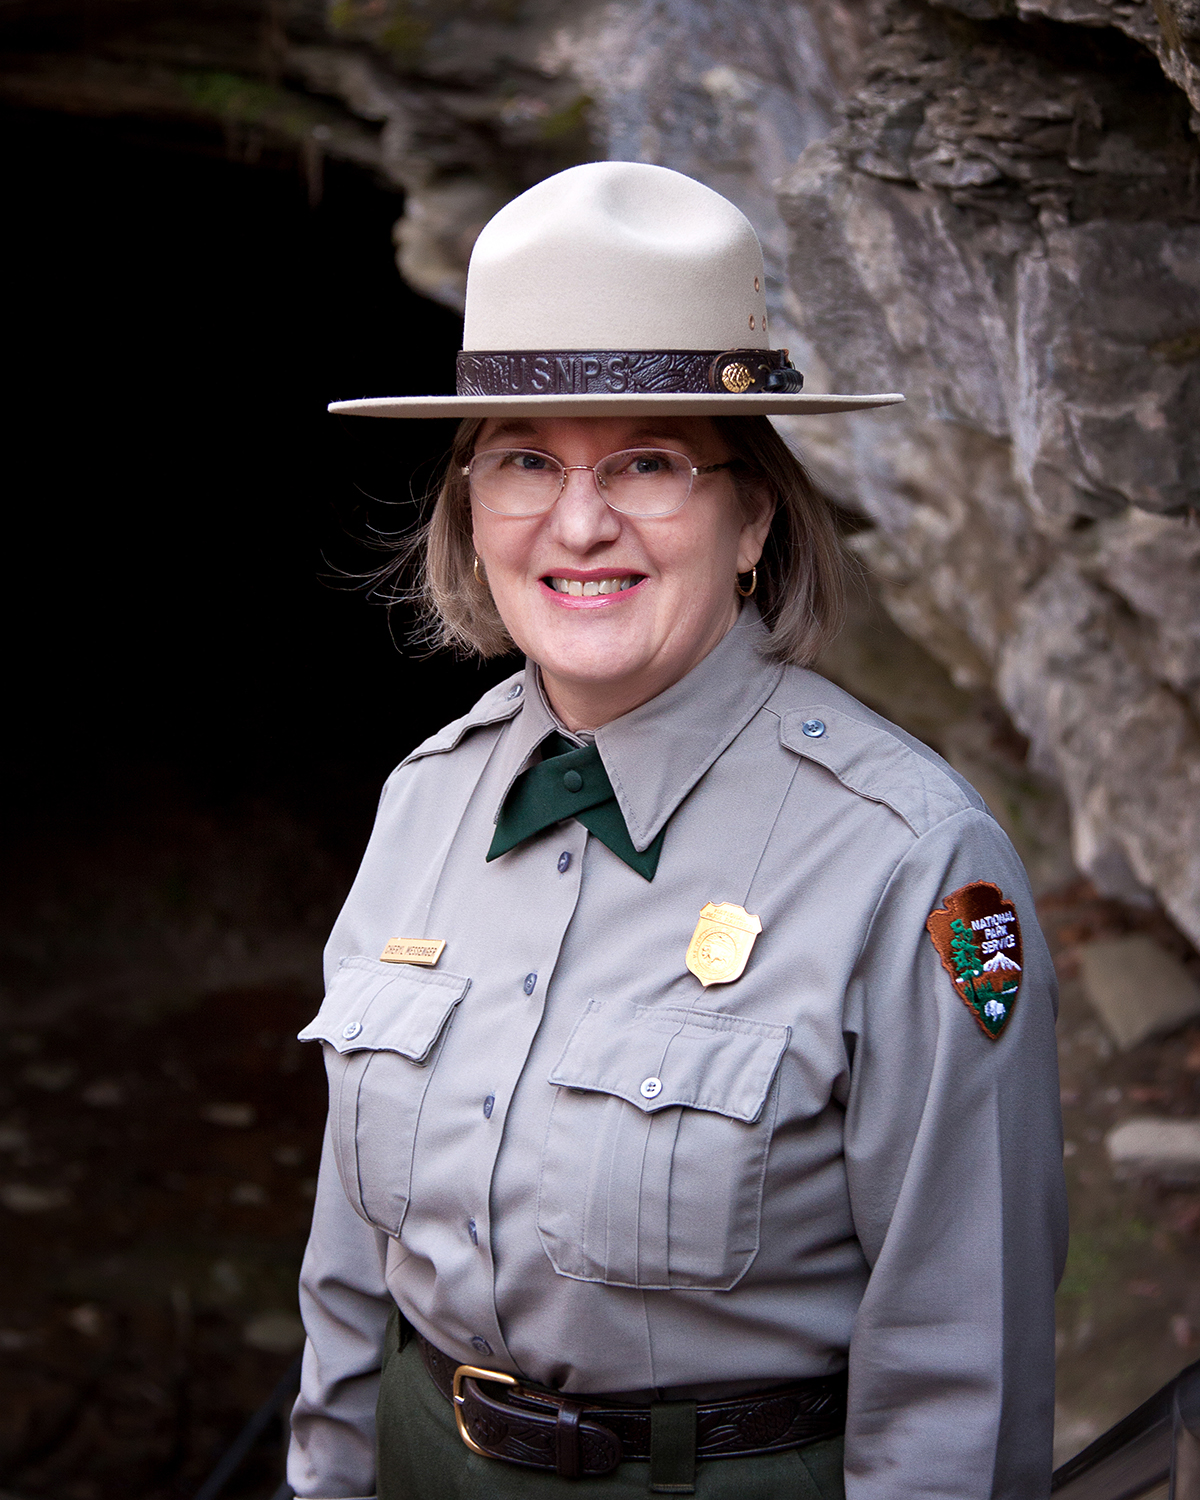 Cheryl Messenger at Historic Entrance of Mammoth Cave